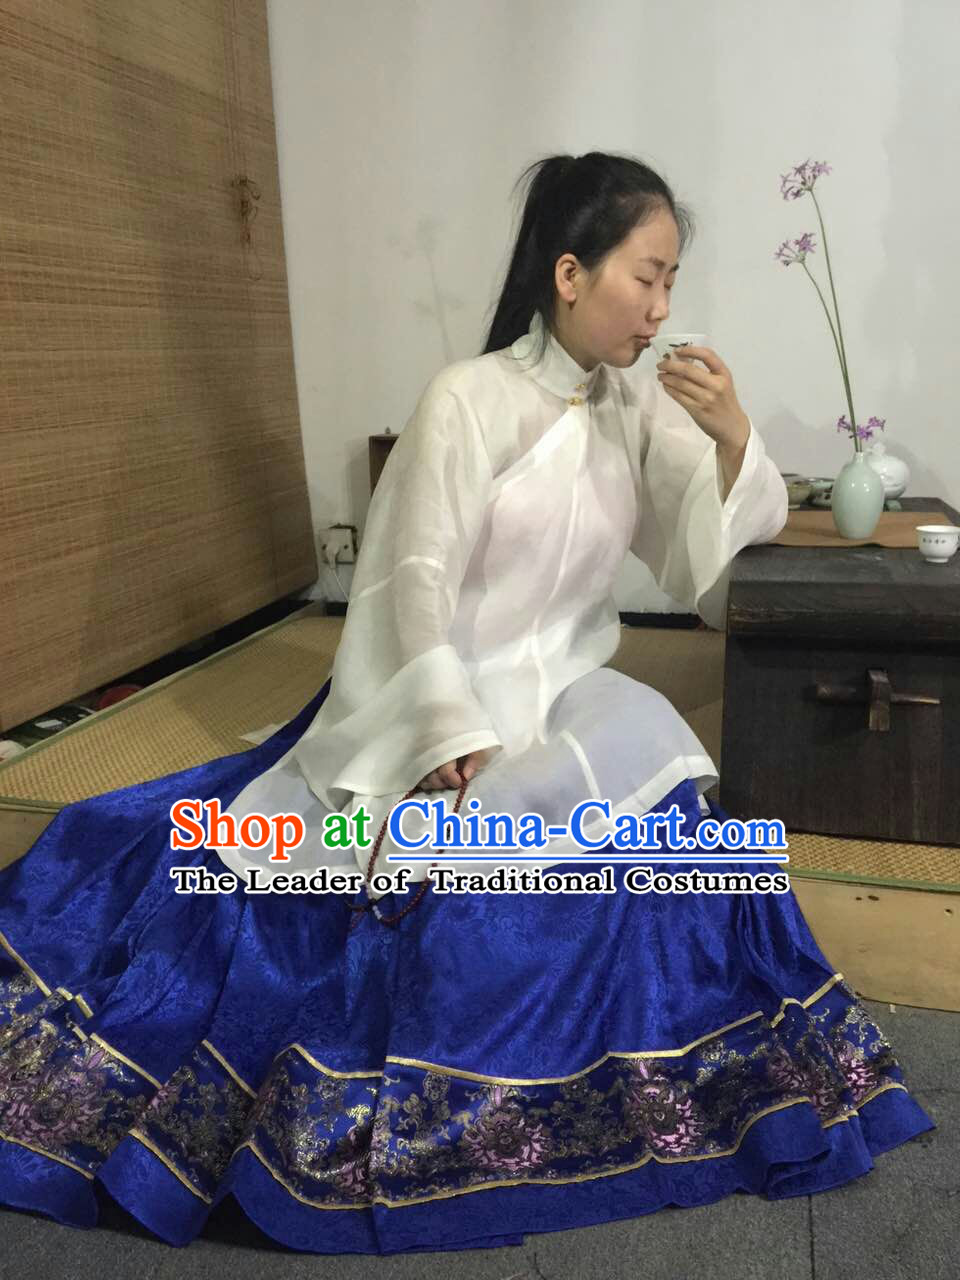 Chinese Ming Dynasty Han Fu Costumes Dresses online Designer Halloween Costume Wedding Gowns Dance Costumes Superhero Costumes Cosplay for Women